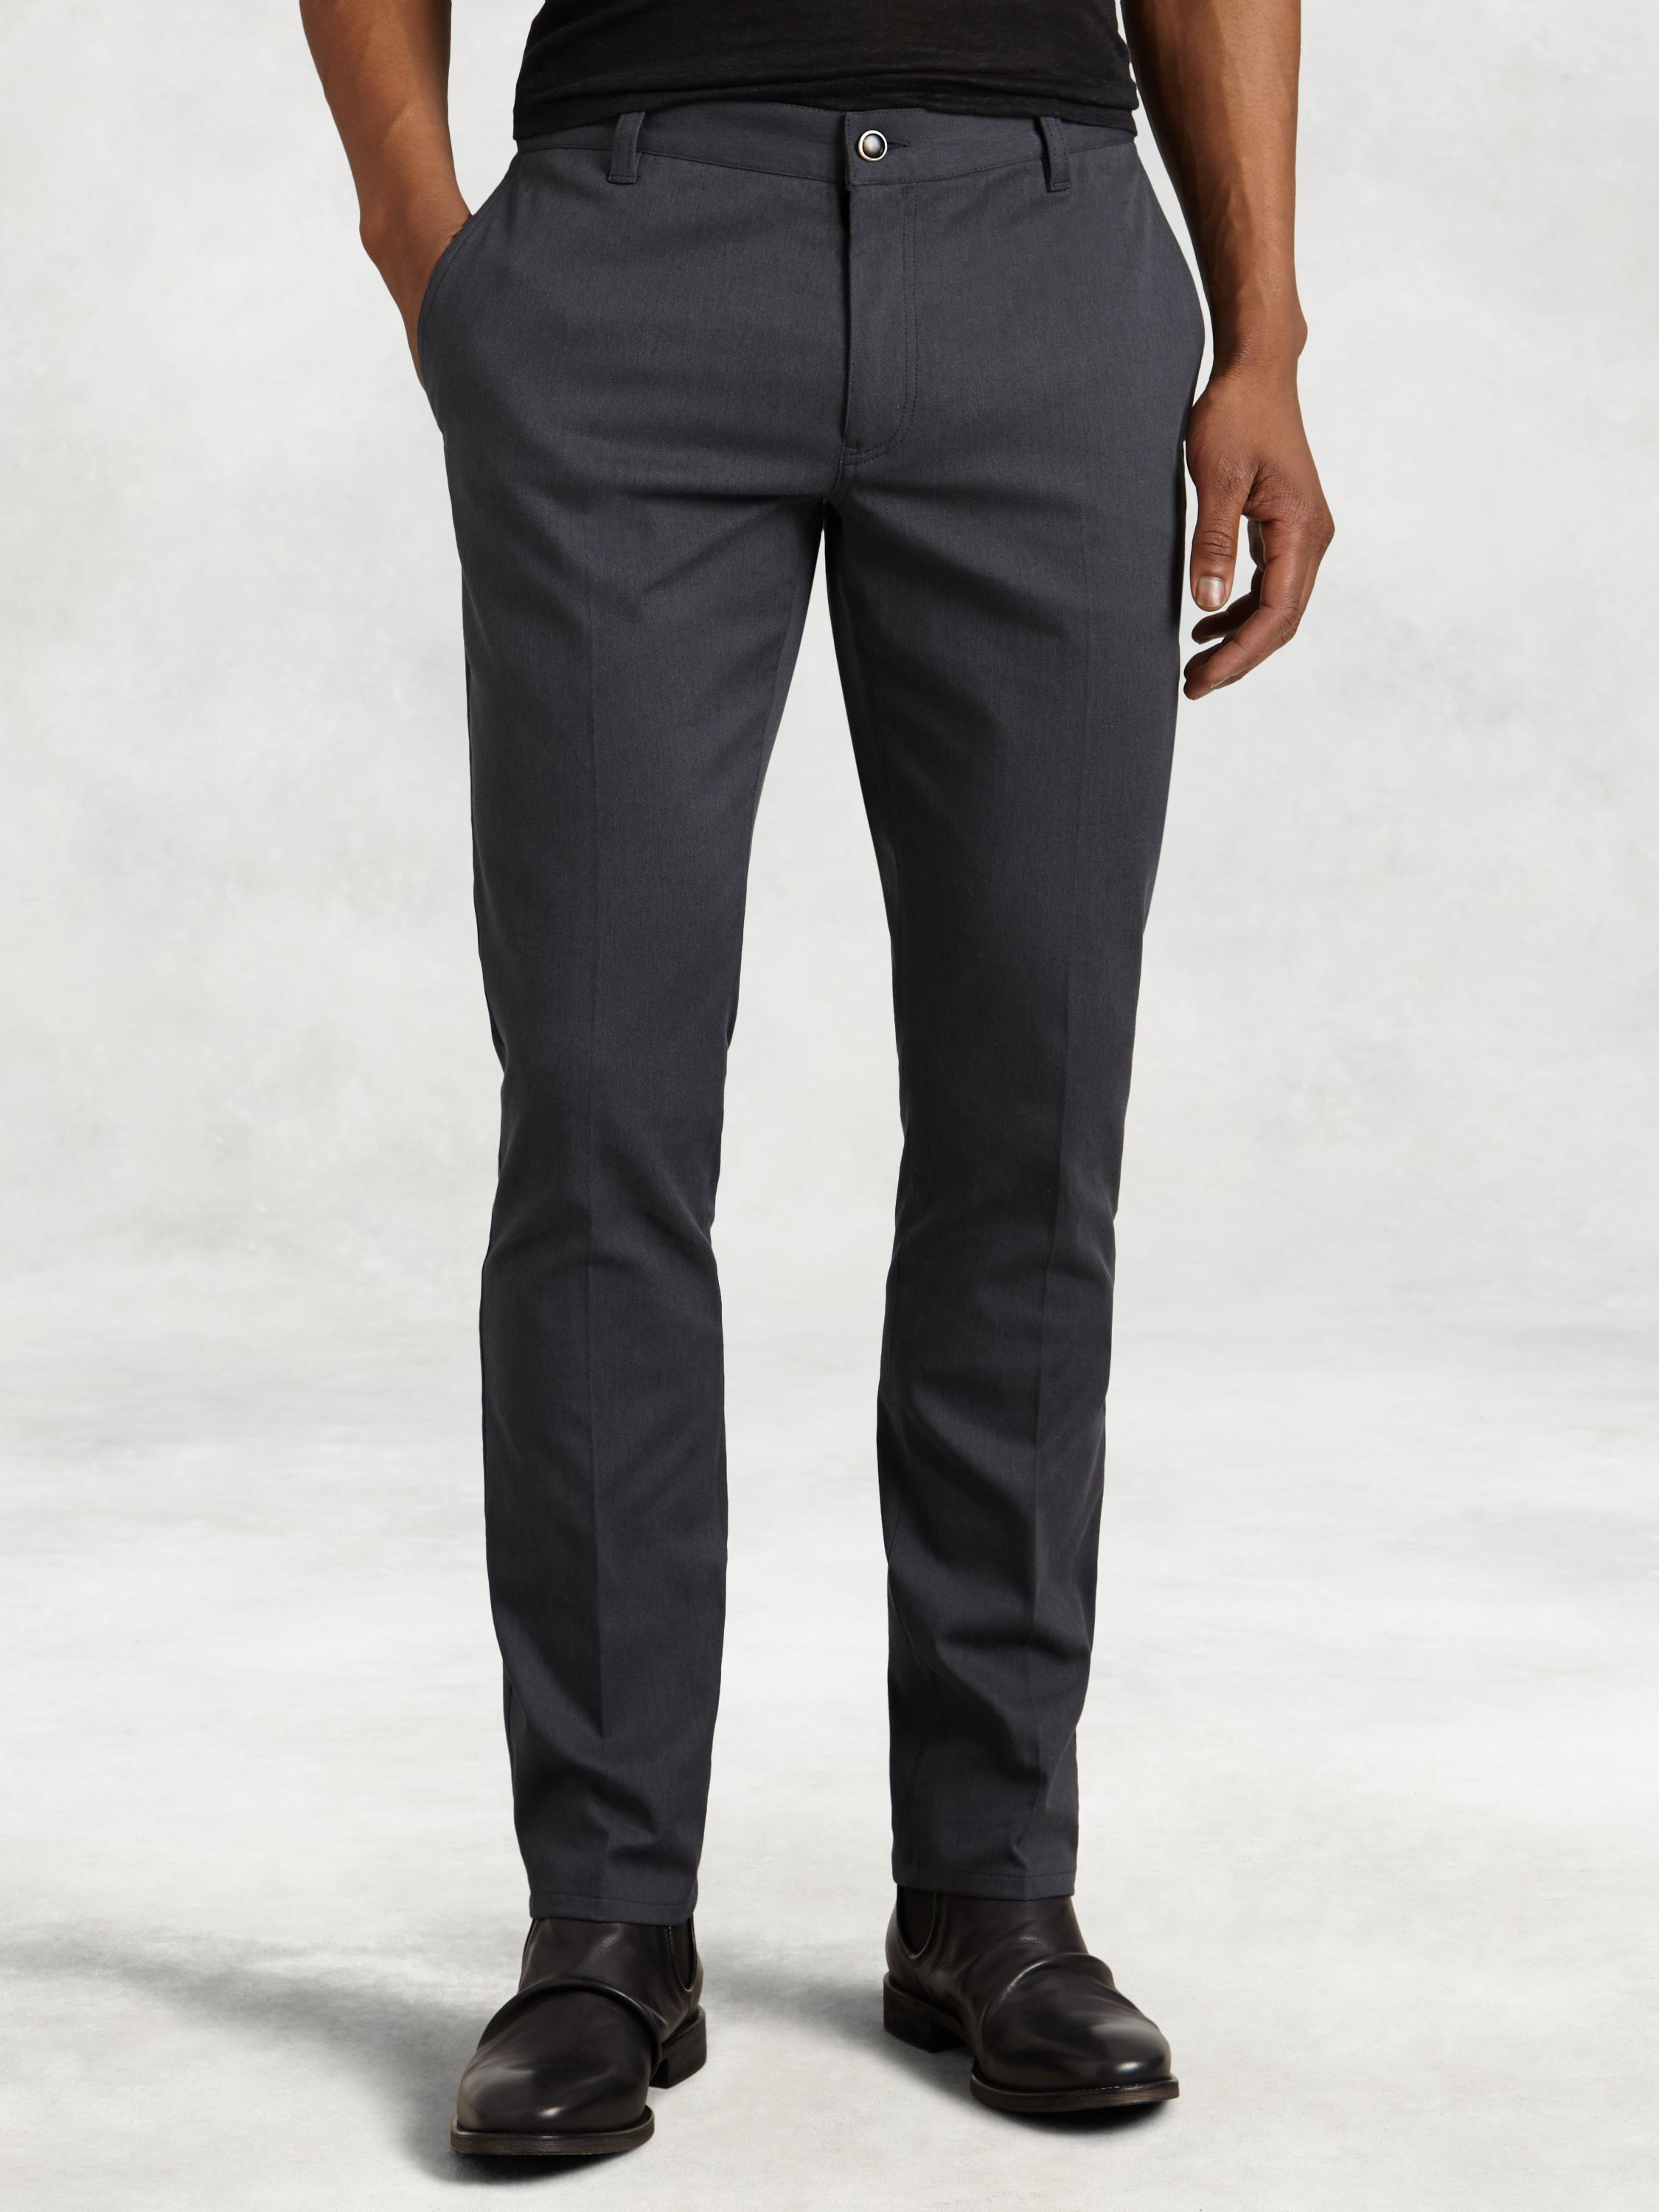 Cotton Stretch Motor City Pant